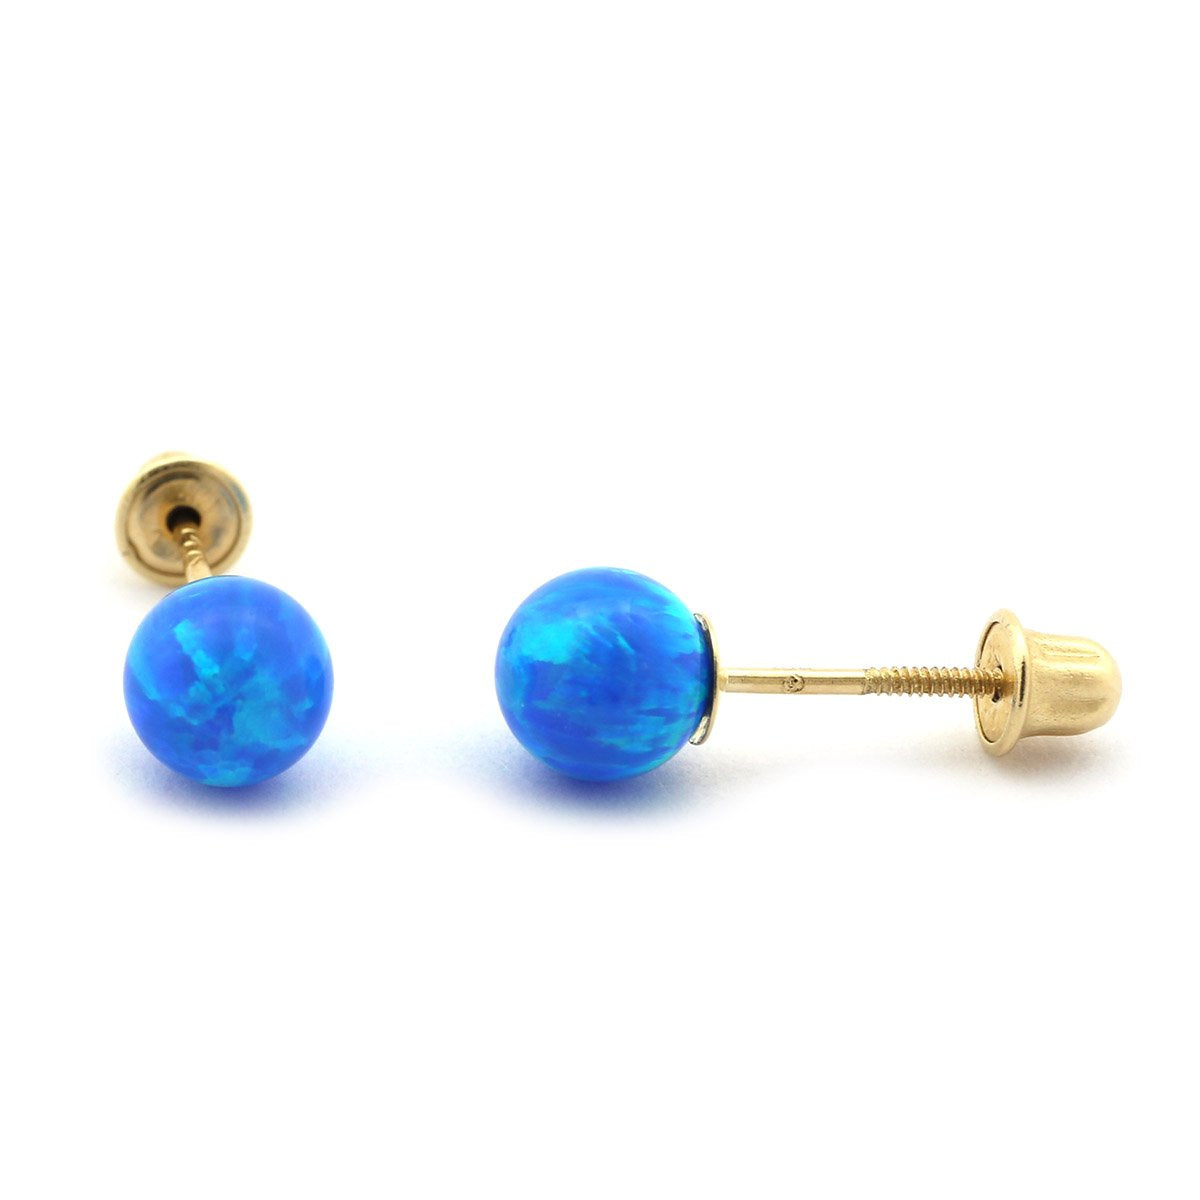 Simulated Opal Round Stud Earrings 14Kt Yellow Gold & Sterling Silver gF2wt3r1